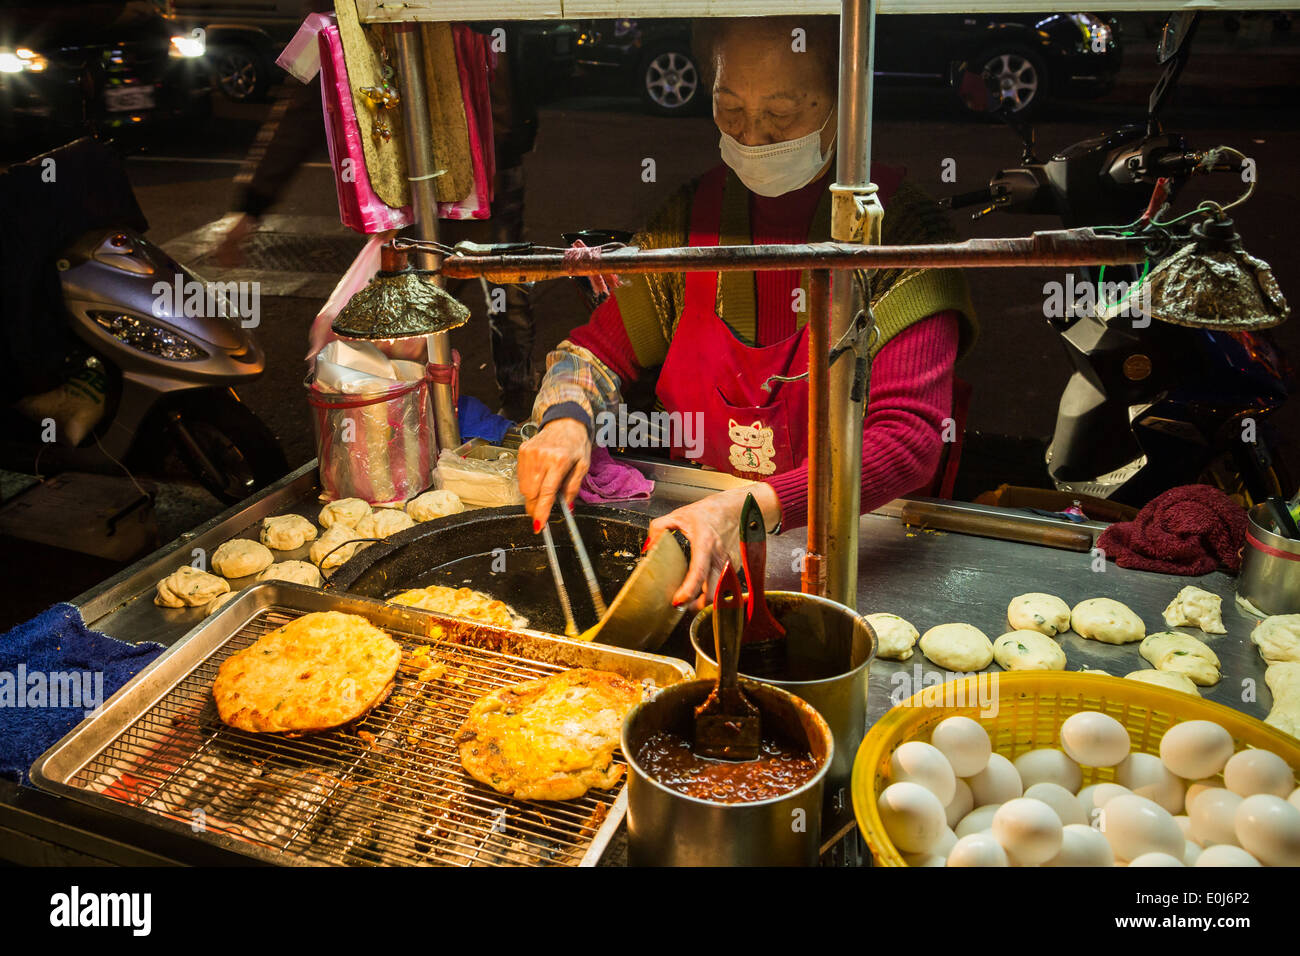 Woman cooking green onion pancakes at food stand in Taiwan - Stock Image